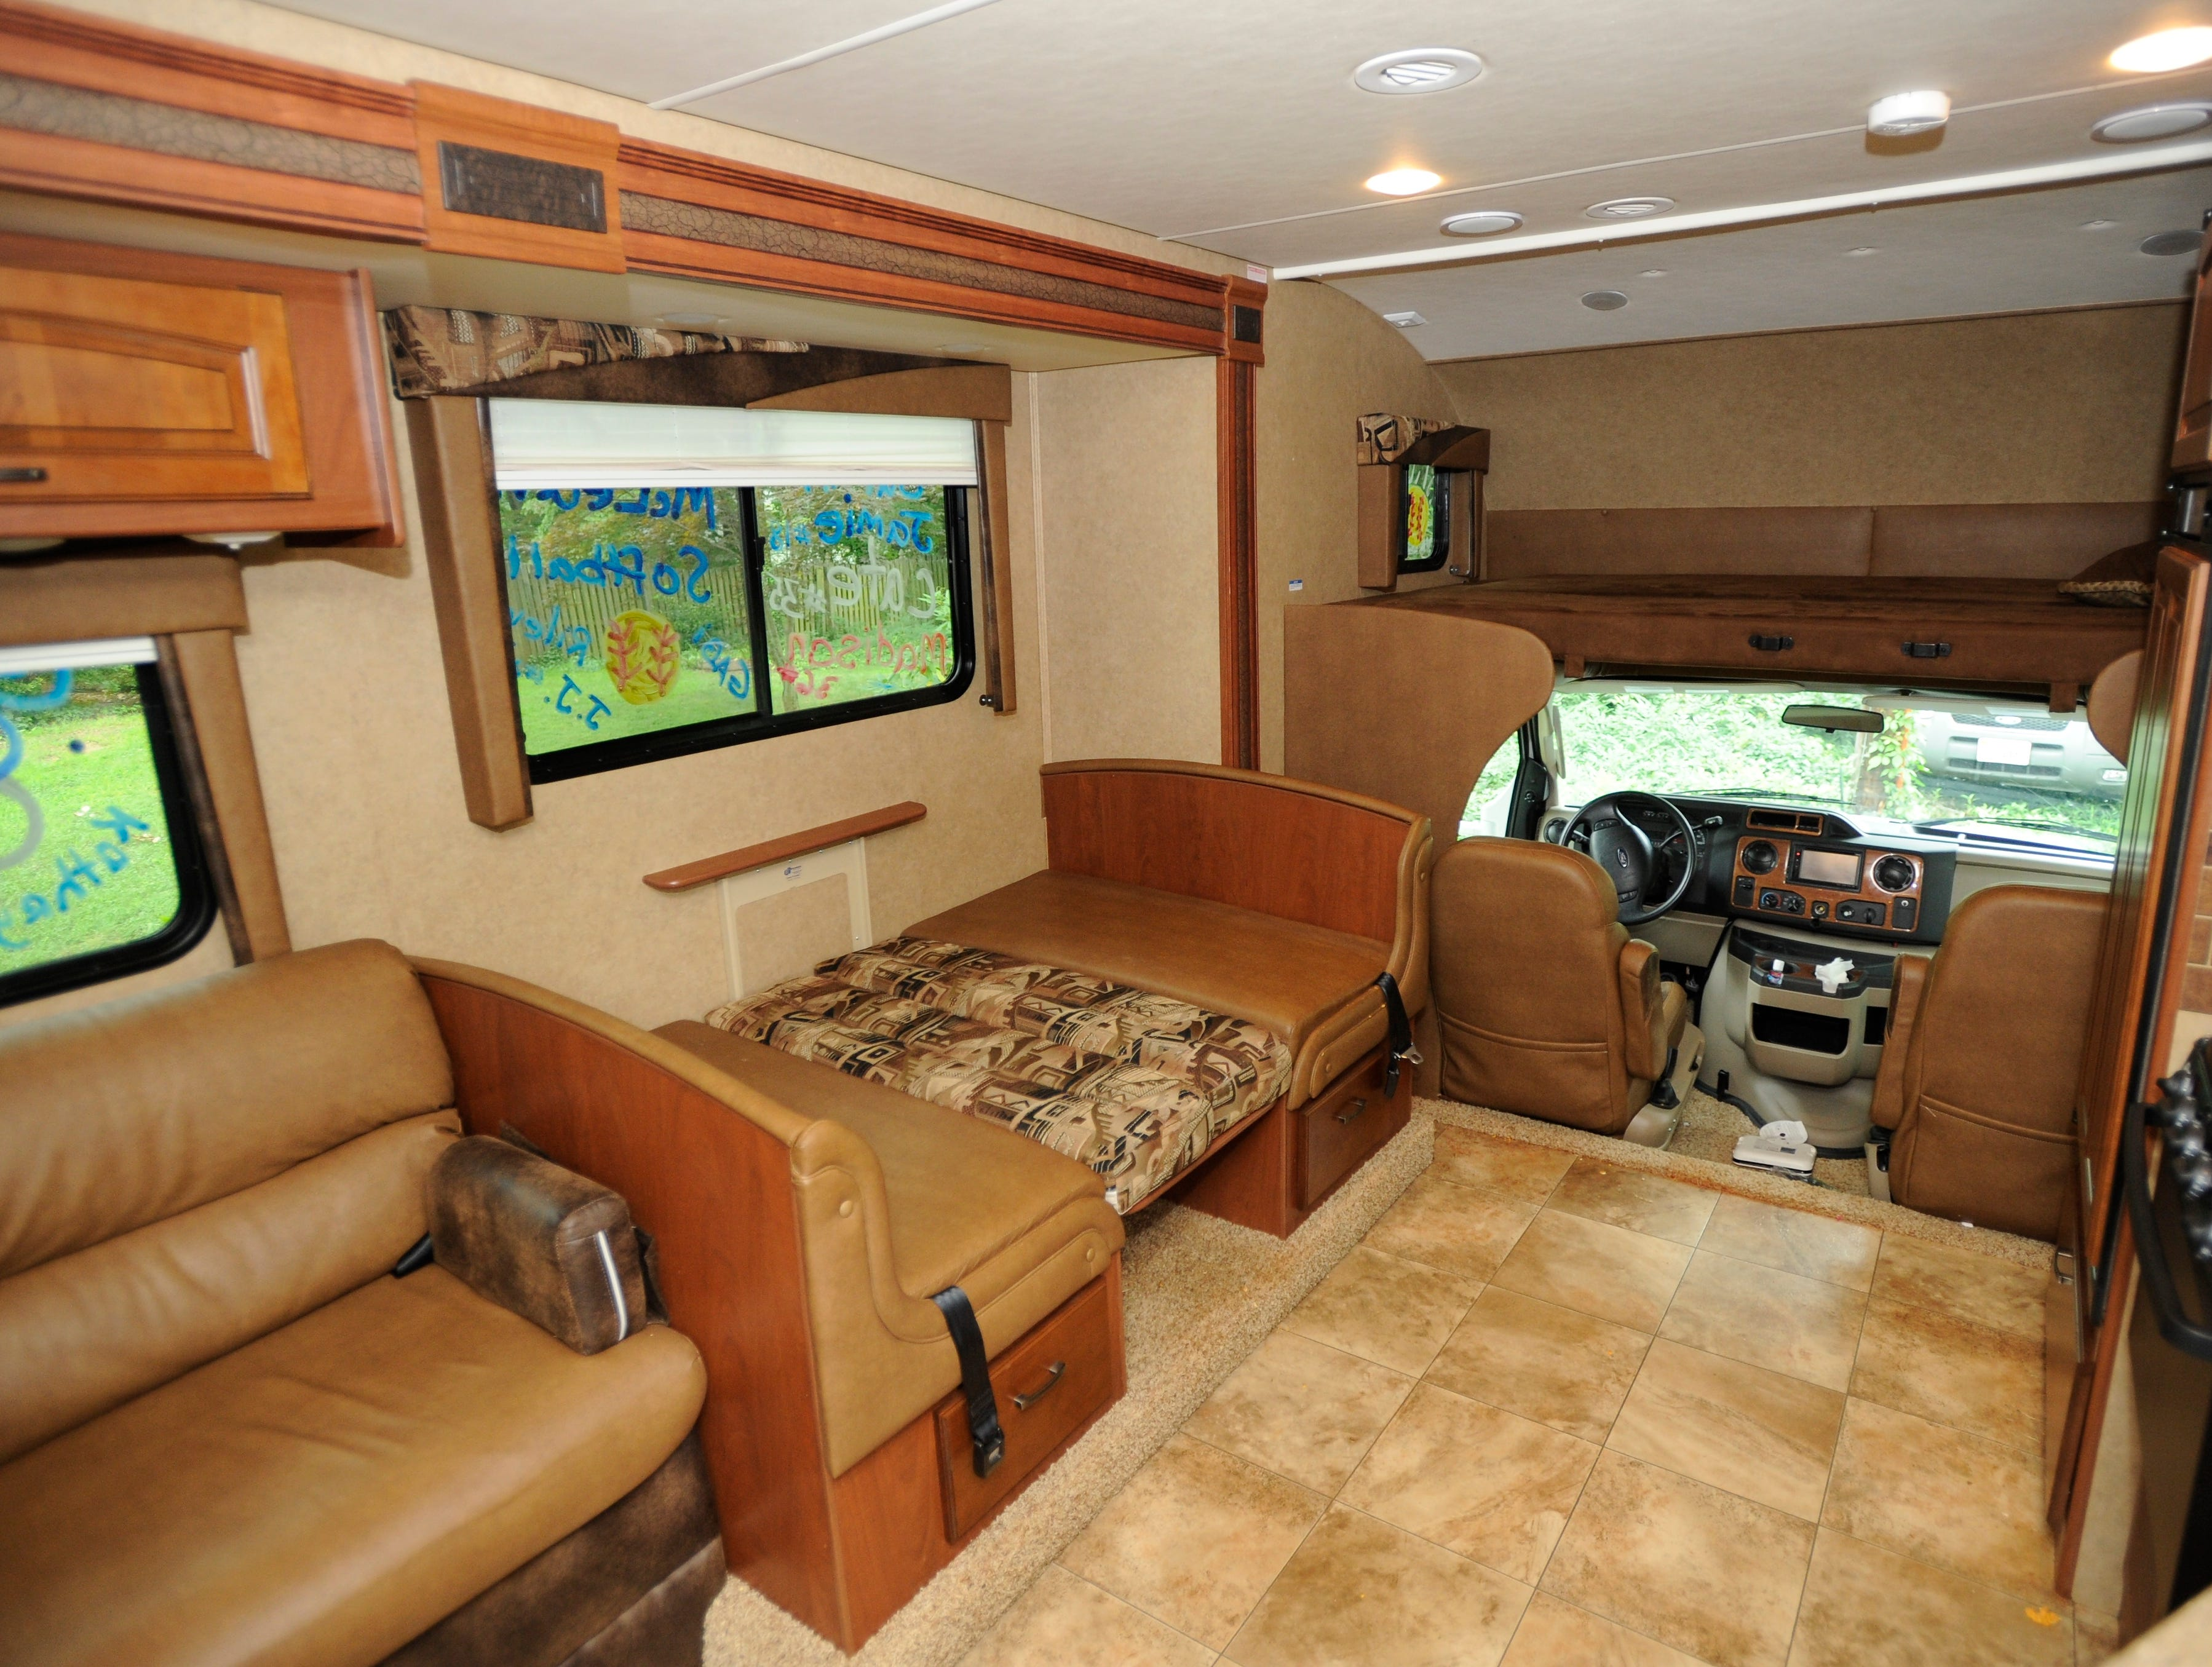 The RV O'Donnell rented was a Jayco Greyhawk, which has a table that converts to a bed.